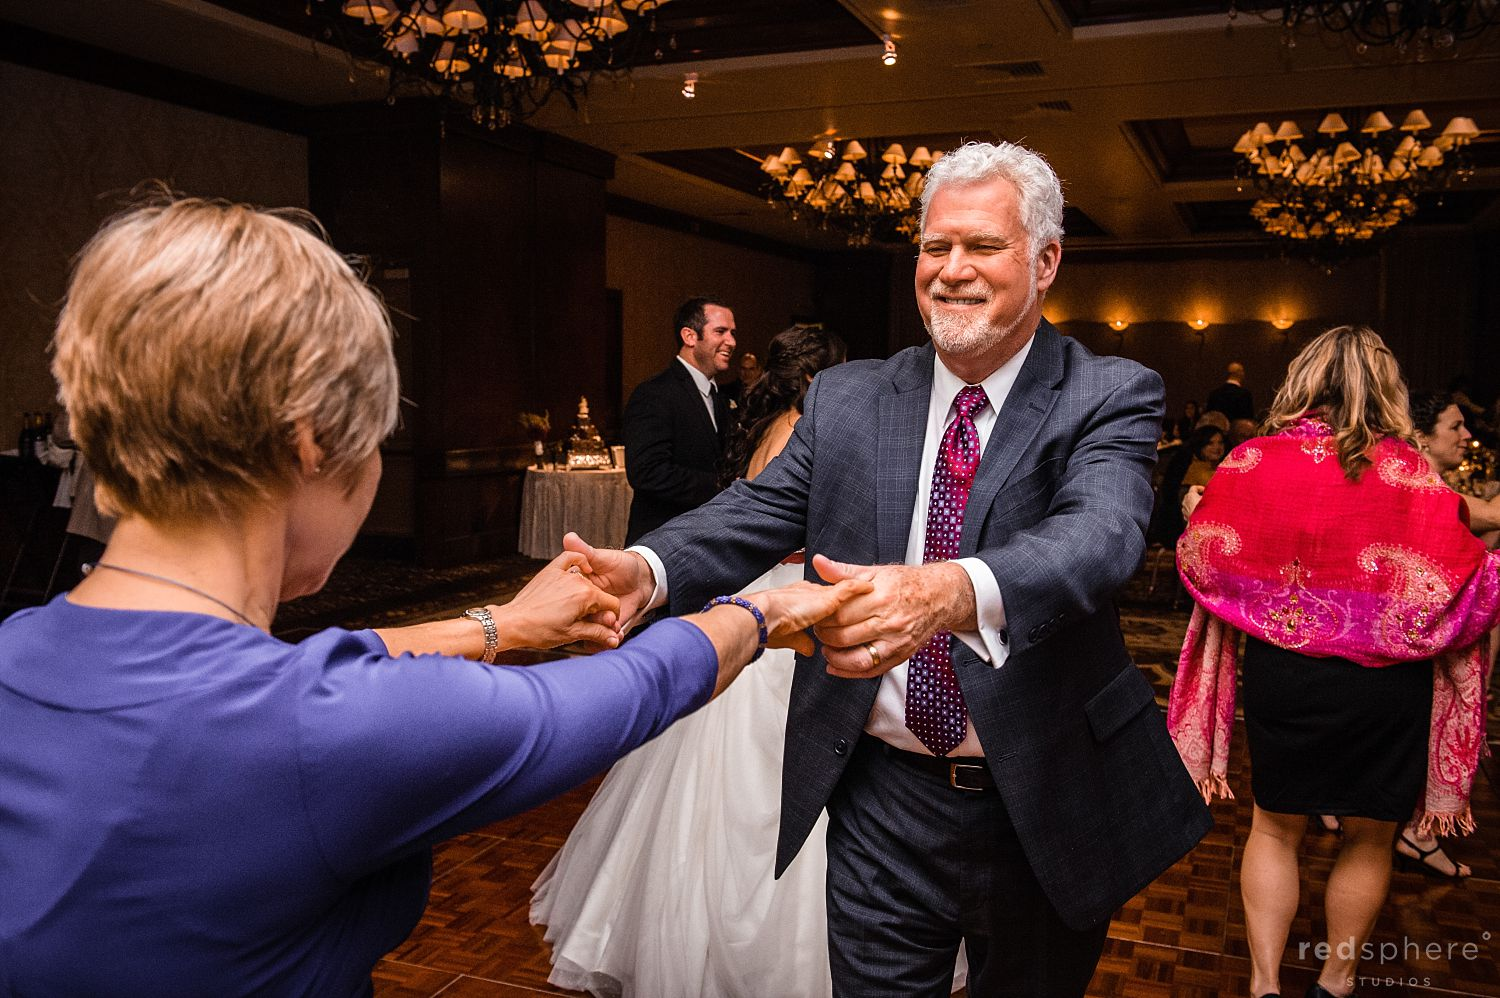 Groom's Parents Dancing at The Inn at Spanish Bay Wedding After Party